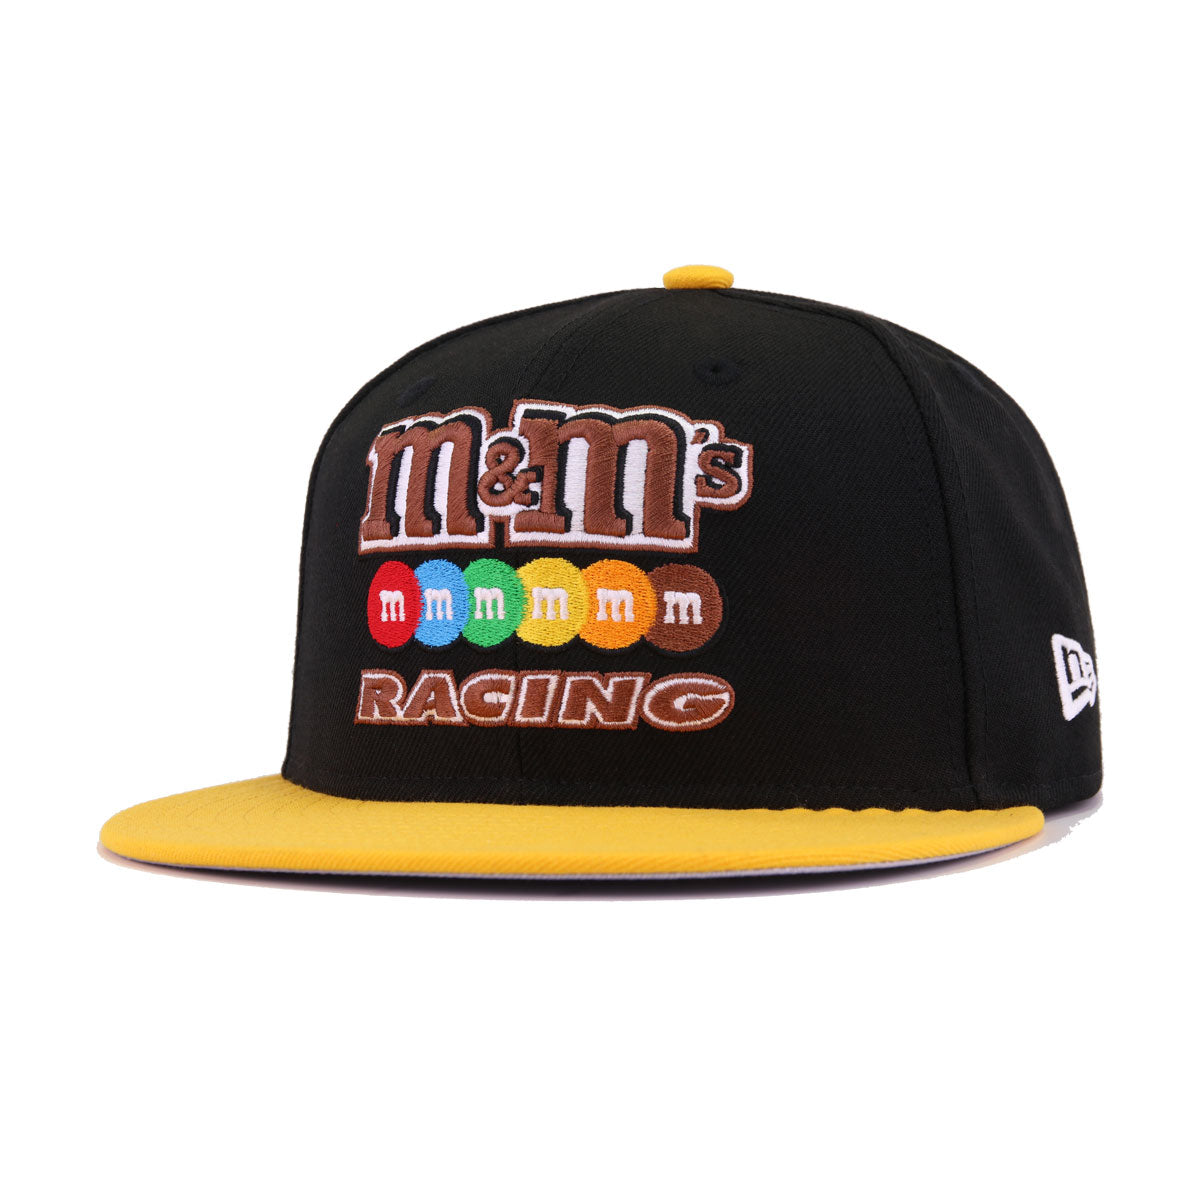 NASCAR Kyle Busch Black A's Gold M&Ms No18 New Era 9Fifty Snapback